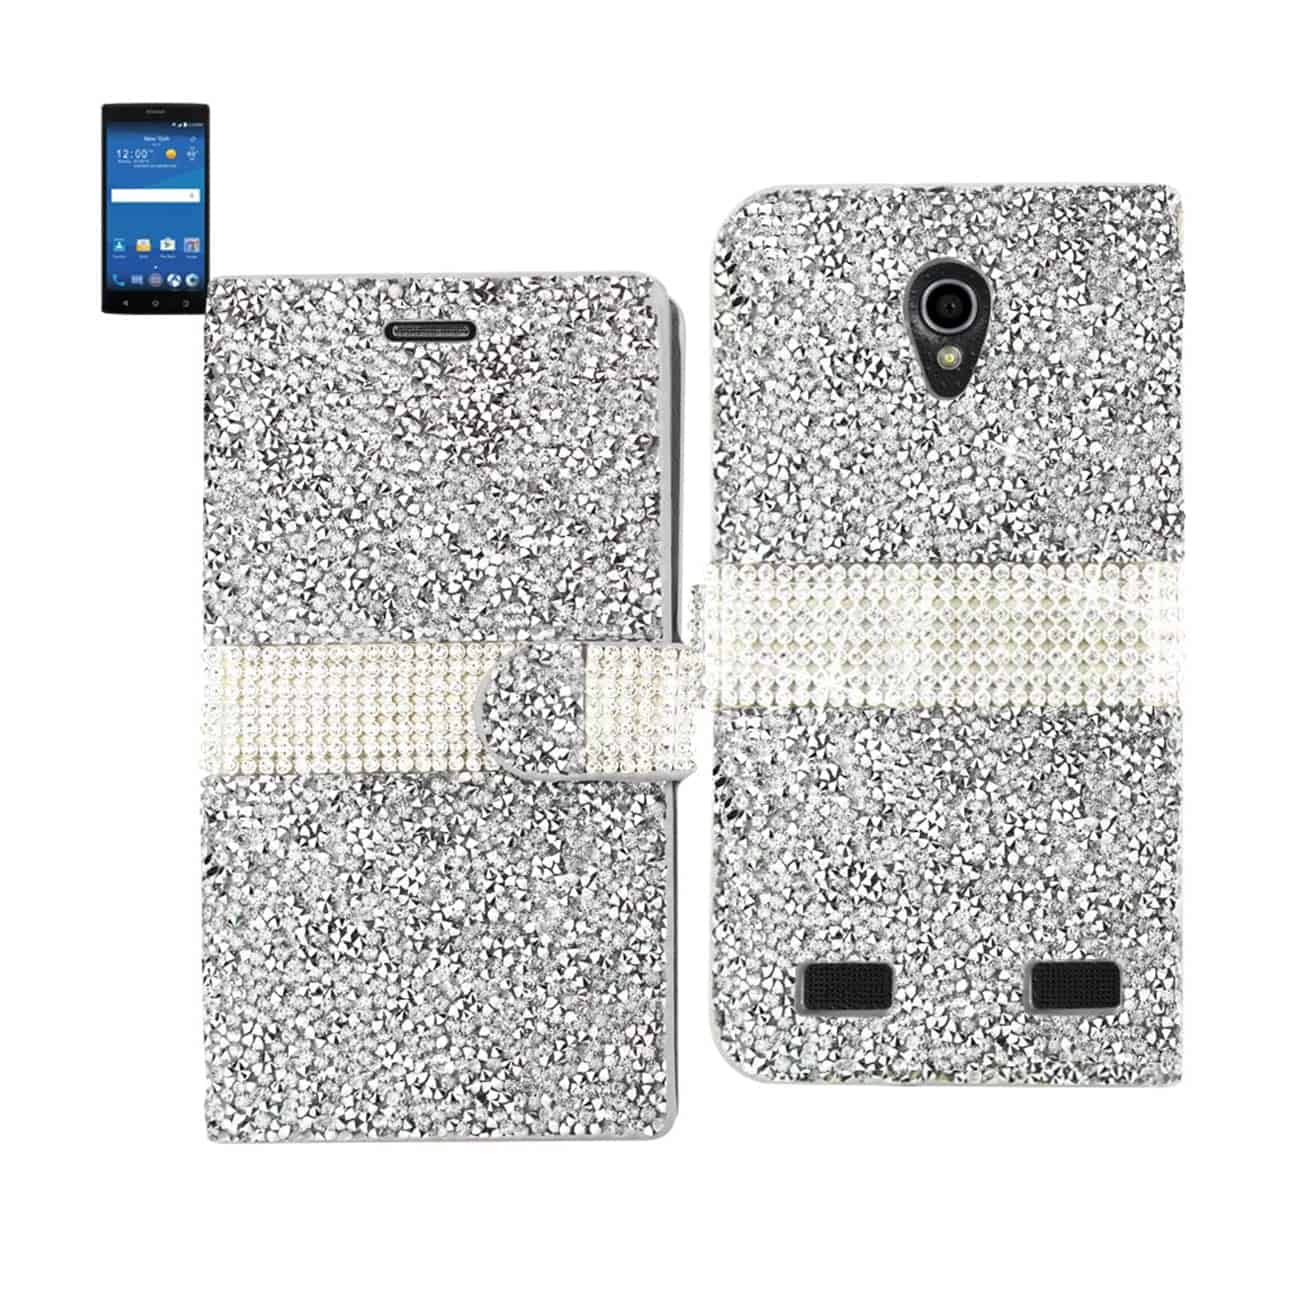 ZTE ZMAX 2 JEWELRY RHINESTONE WALLET CASE IN SILVER